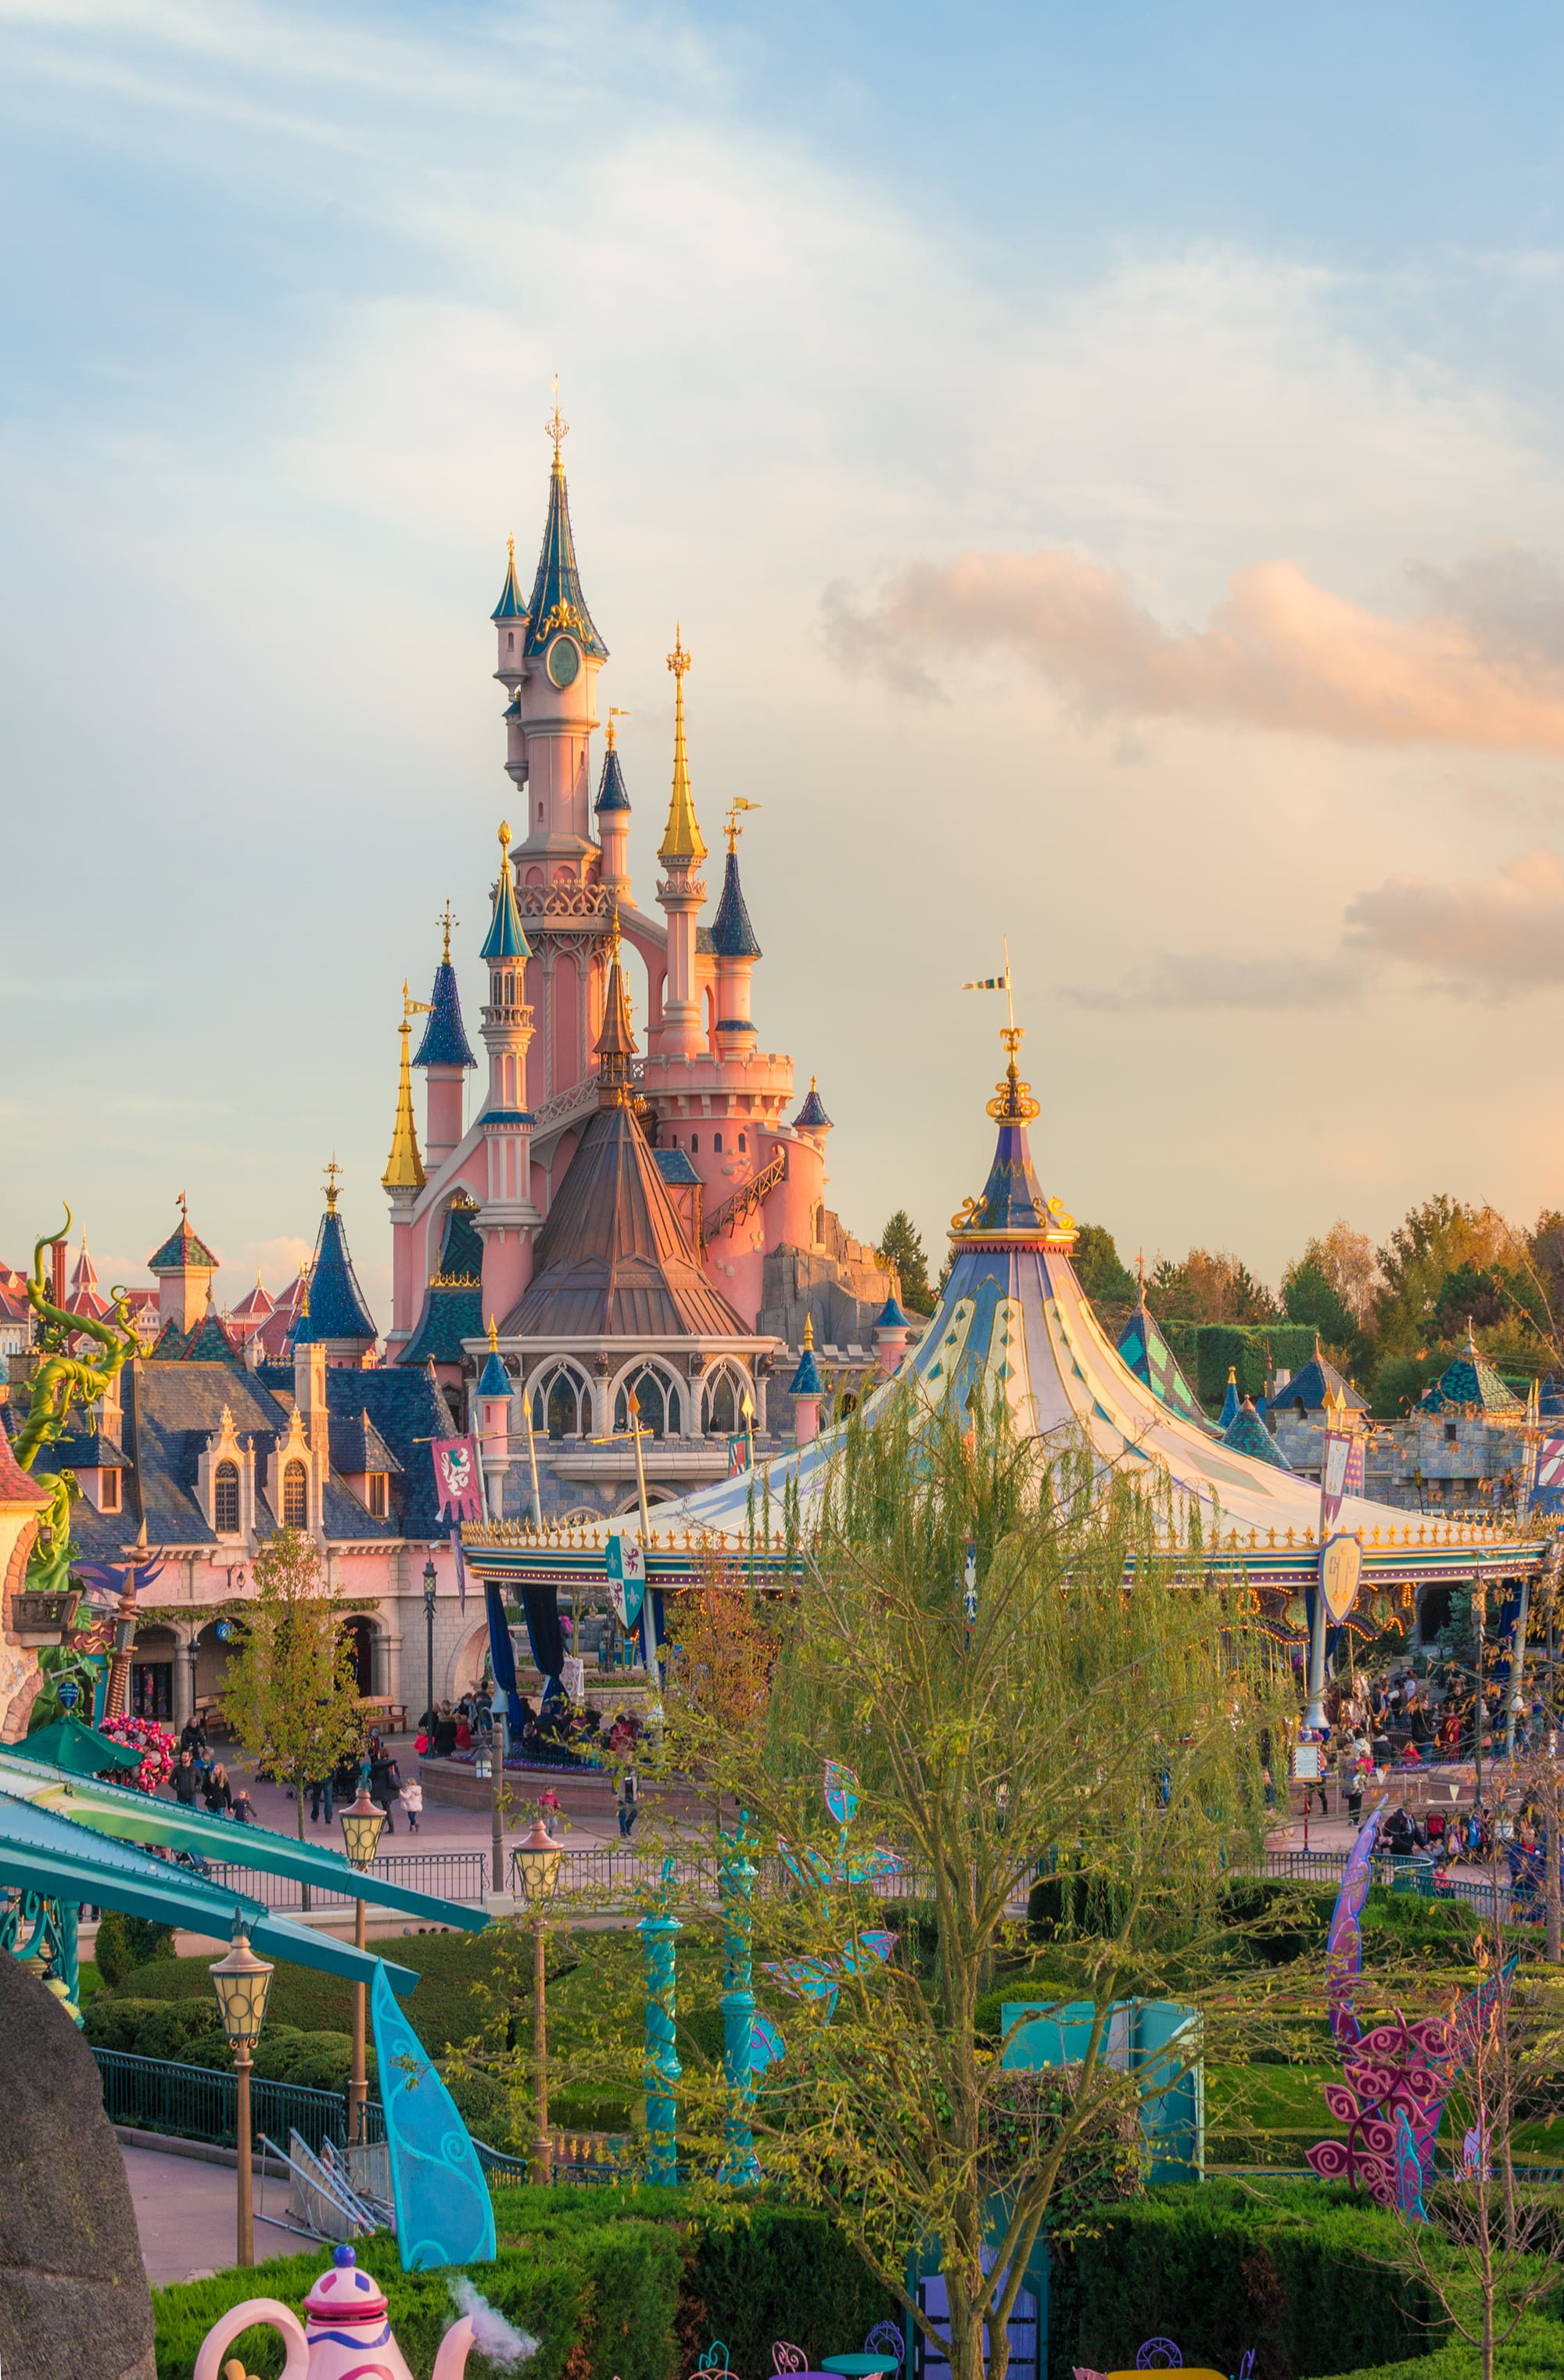 Disneyland Paris Holidays Your journey to the Magic starts here Let Breakaway bring you to the heart of the magic of Disneyland Paris Holidays  As Disneys Official Distributor we offer the best value you the special offers and expert advice for Disneyland Paris Holidays